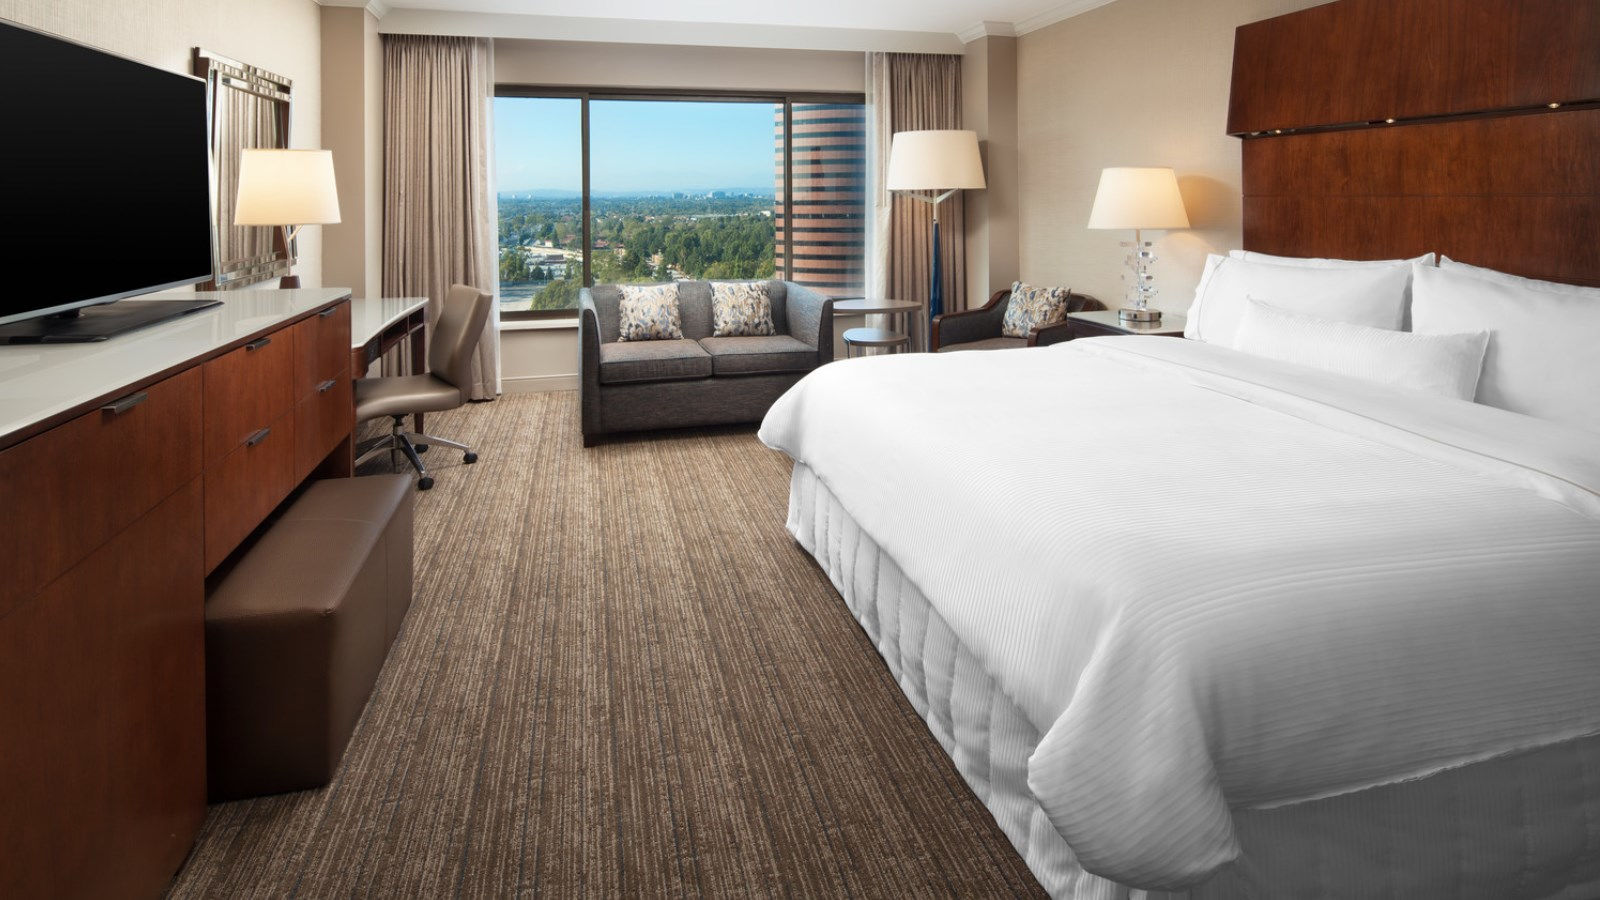 Deluxe Room | The Westin South Coast Plaza, Costa Mesa